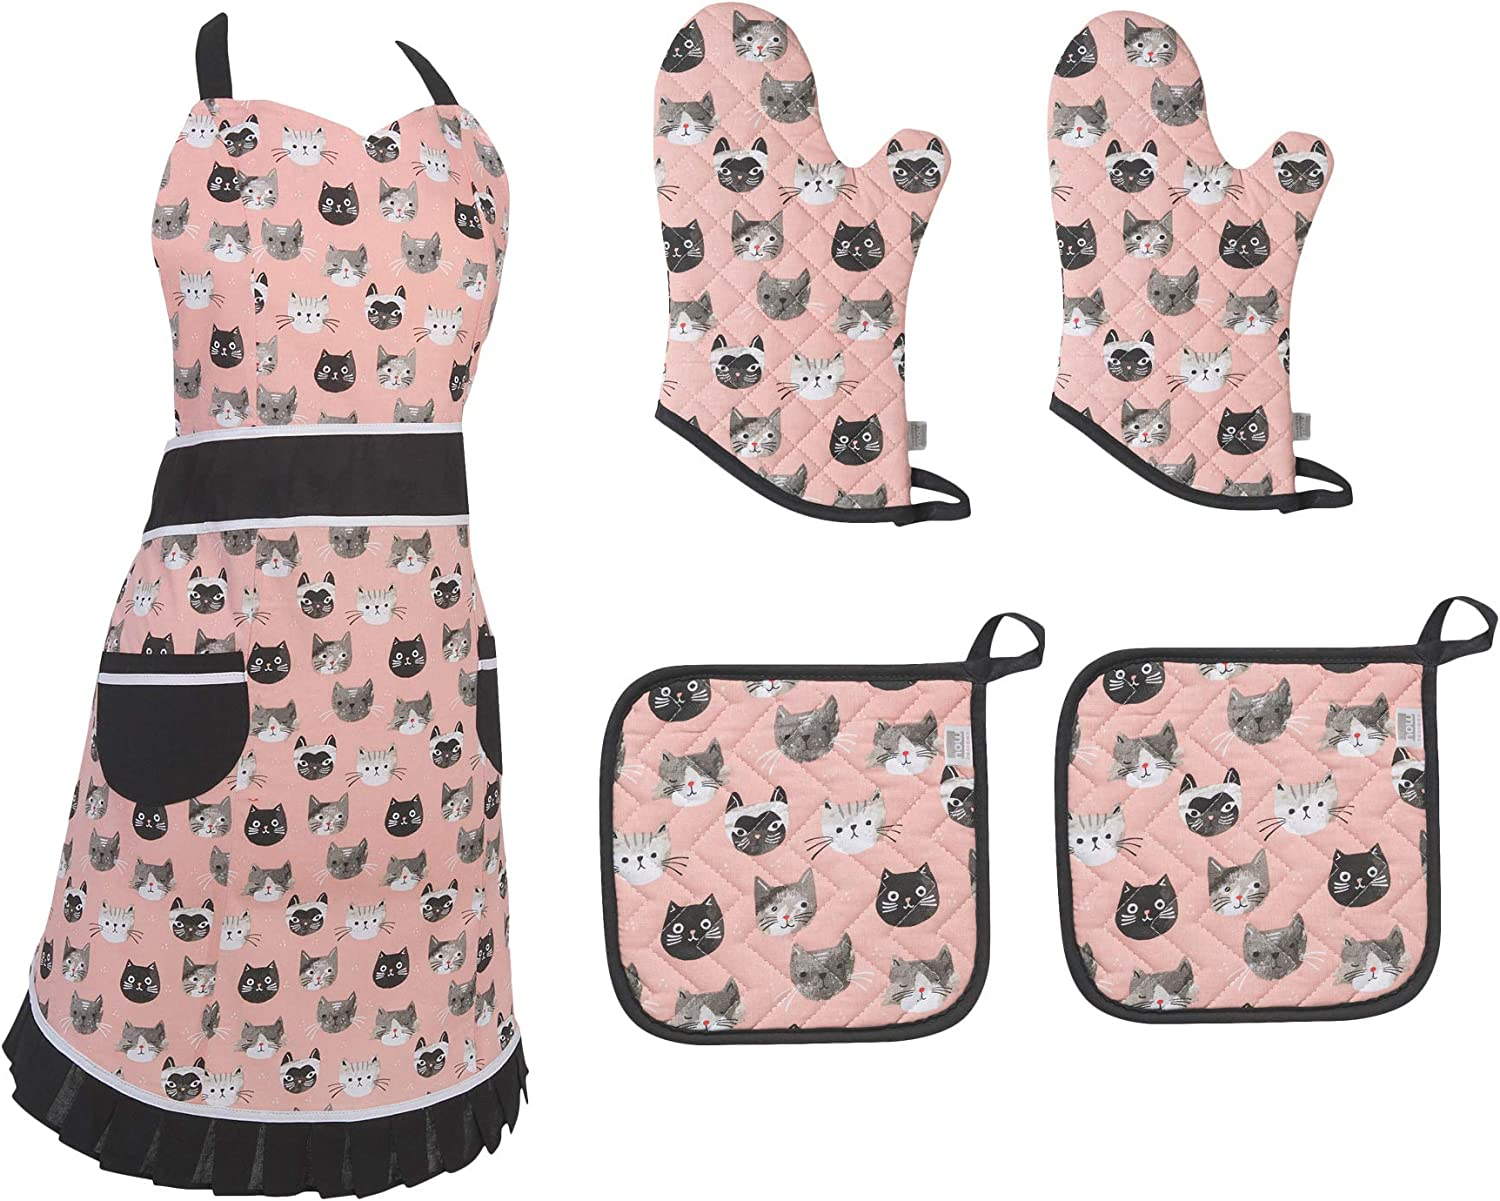 Cat Apron Oven Mitt Set Durable Adjustable Kitchen Cooking Baking Chef Cat Design Apron Oven Mitts Pot Holders 5 pc